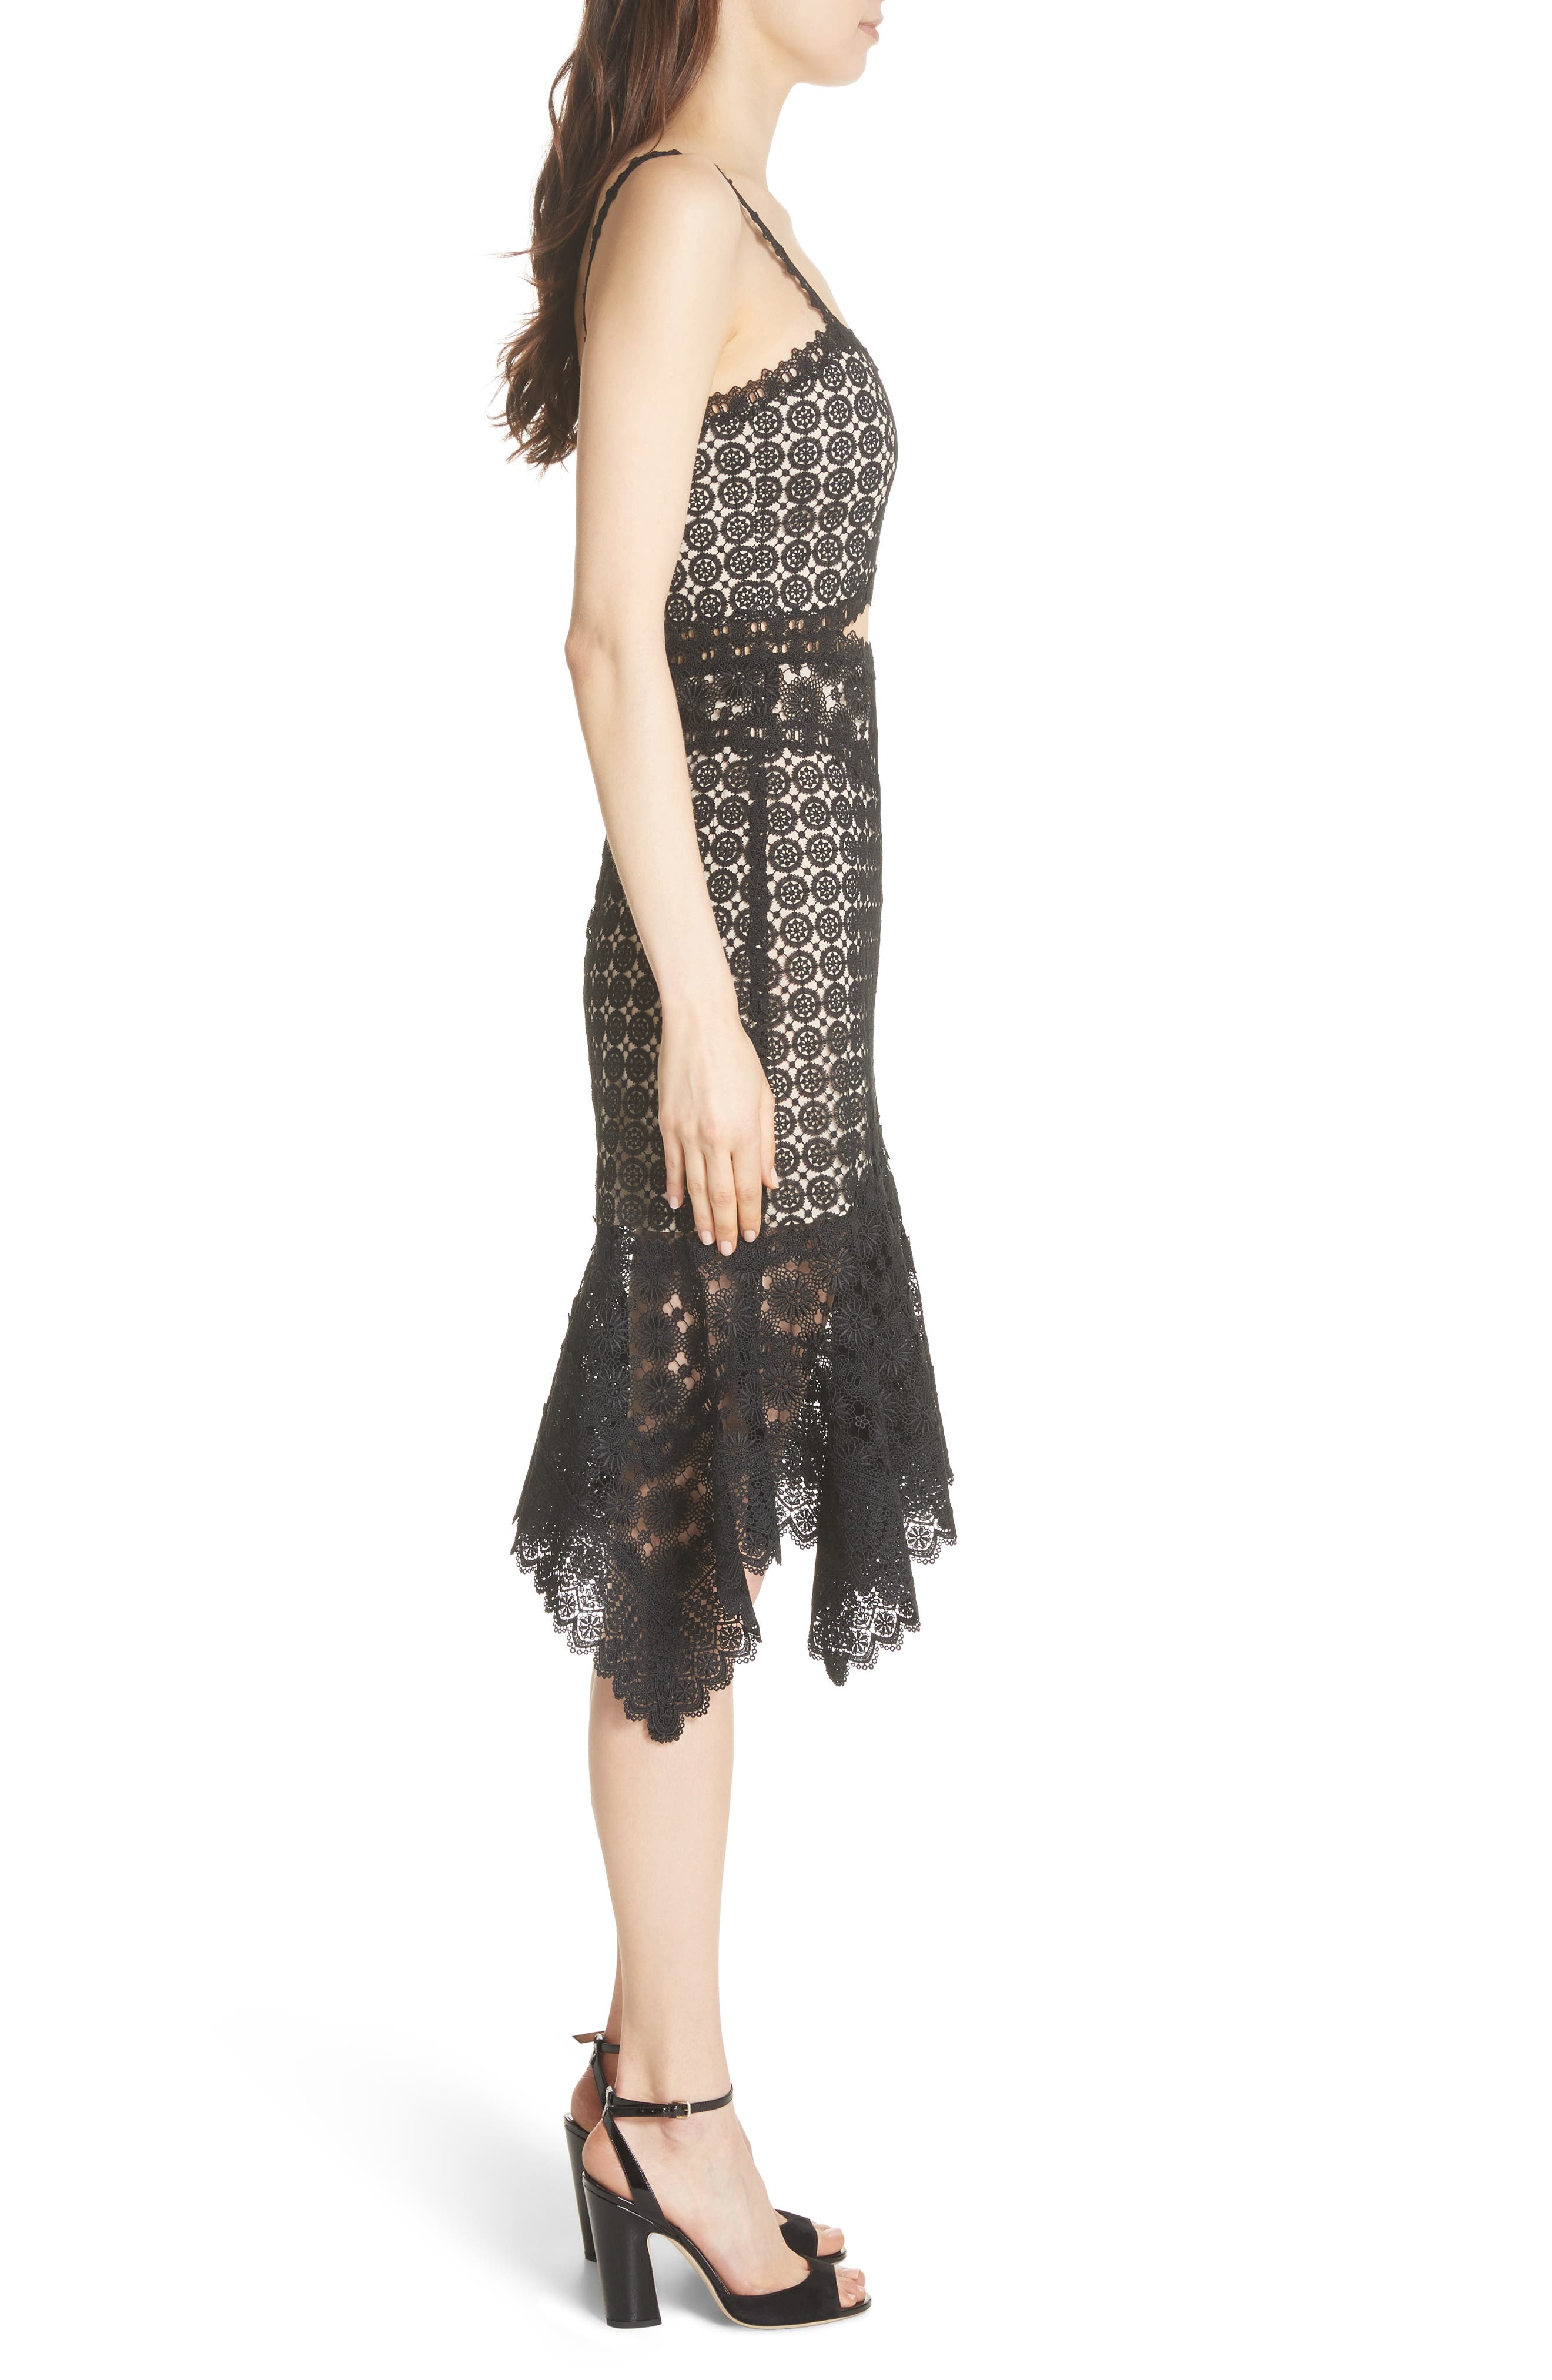 Tamika Handkerchief Lace Dress,                             Alternate thumbnail 3, color,                             Black/ Sesame